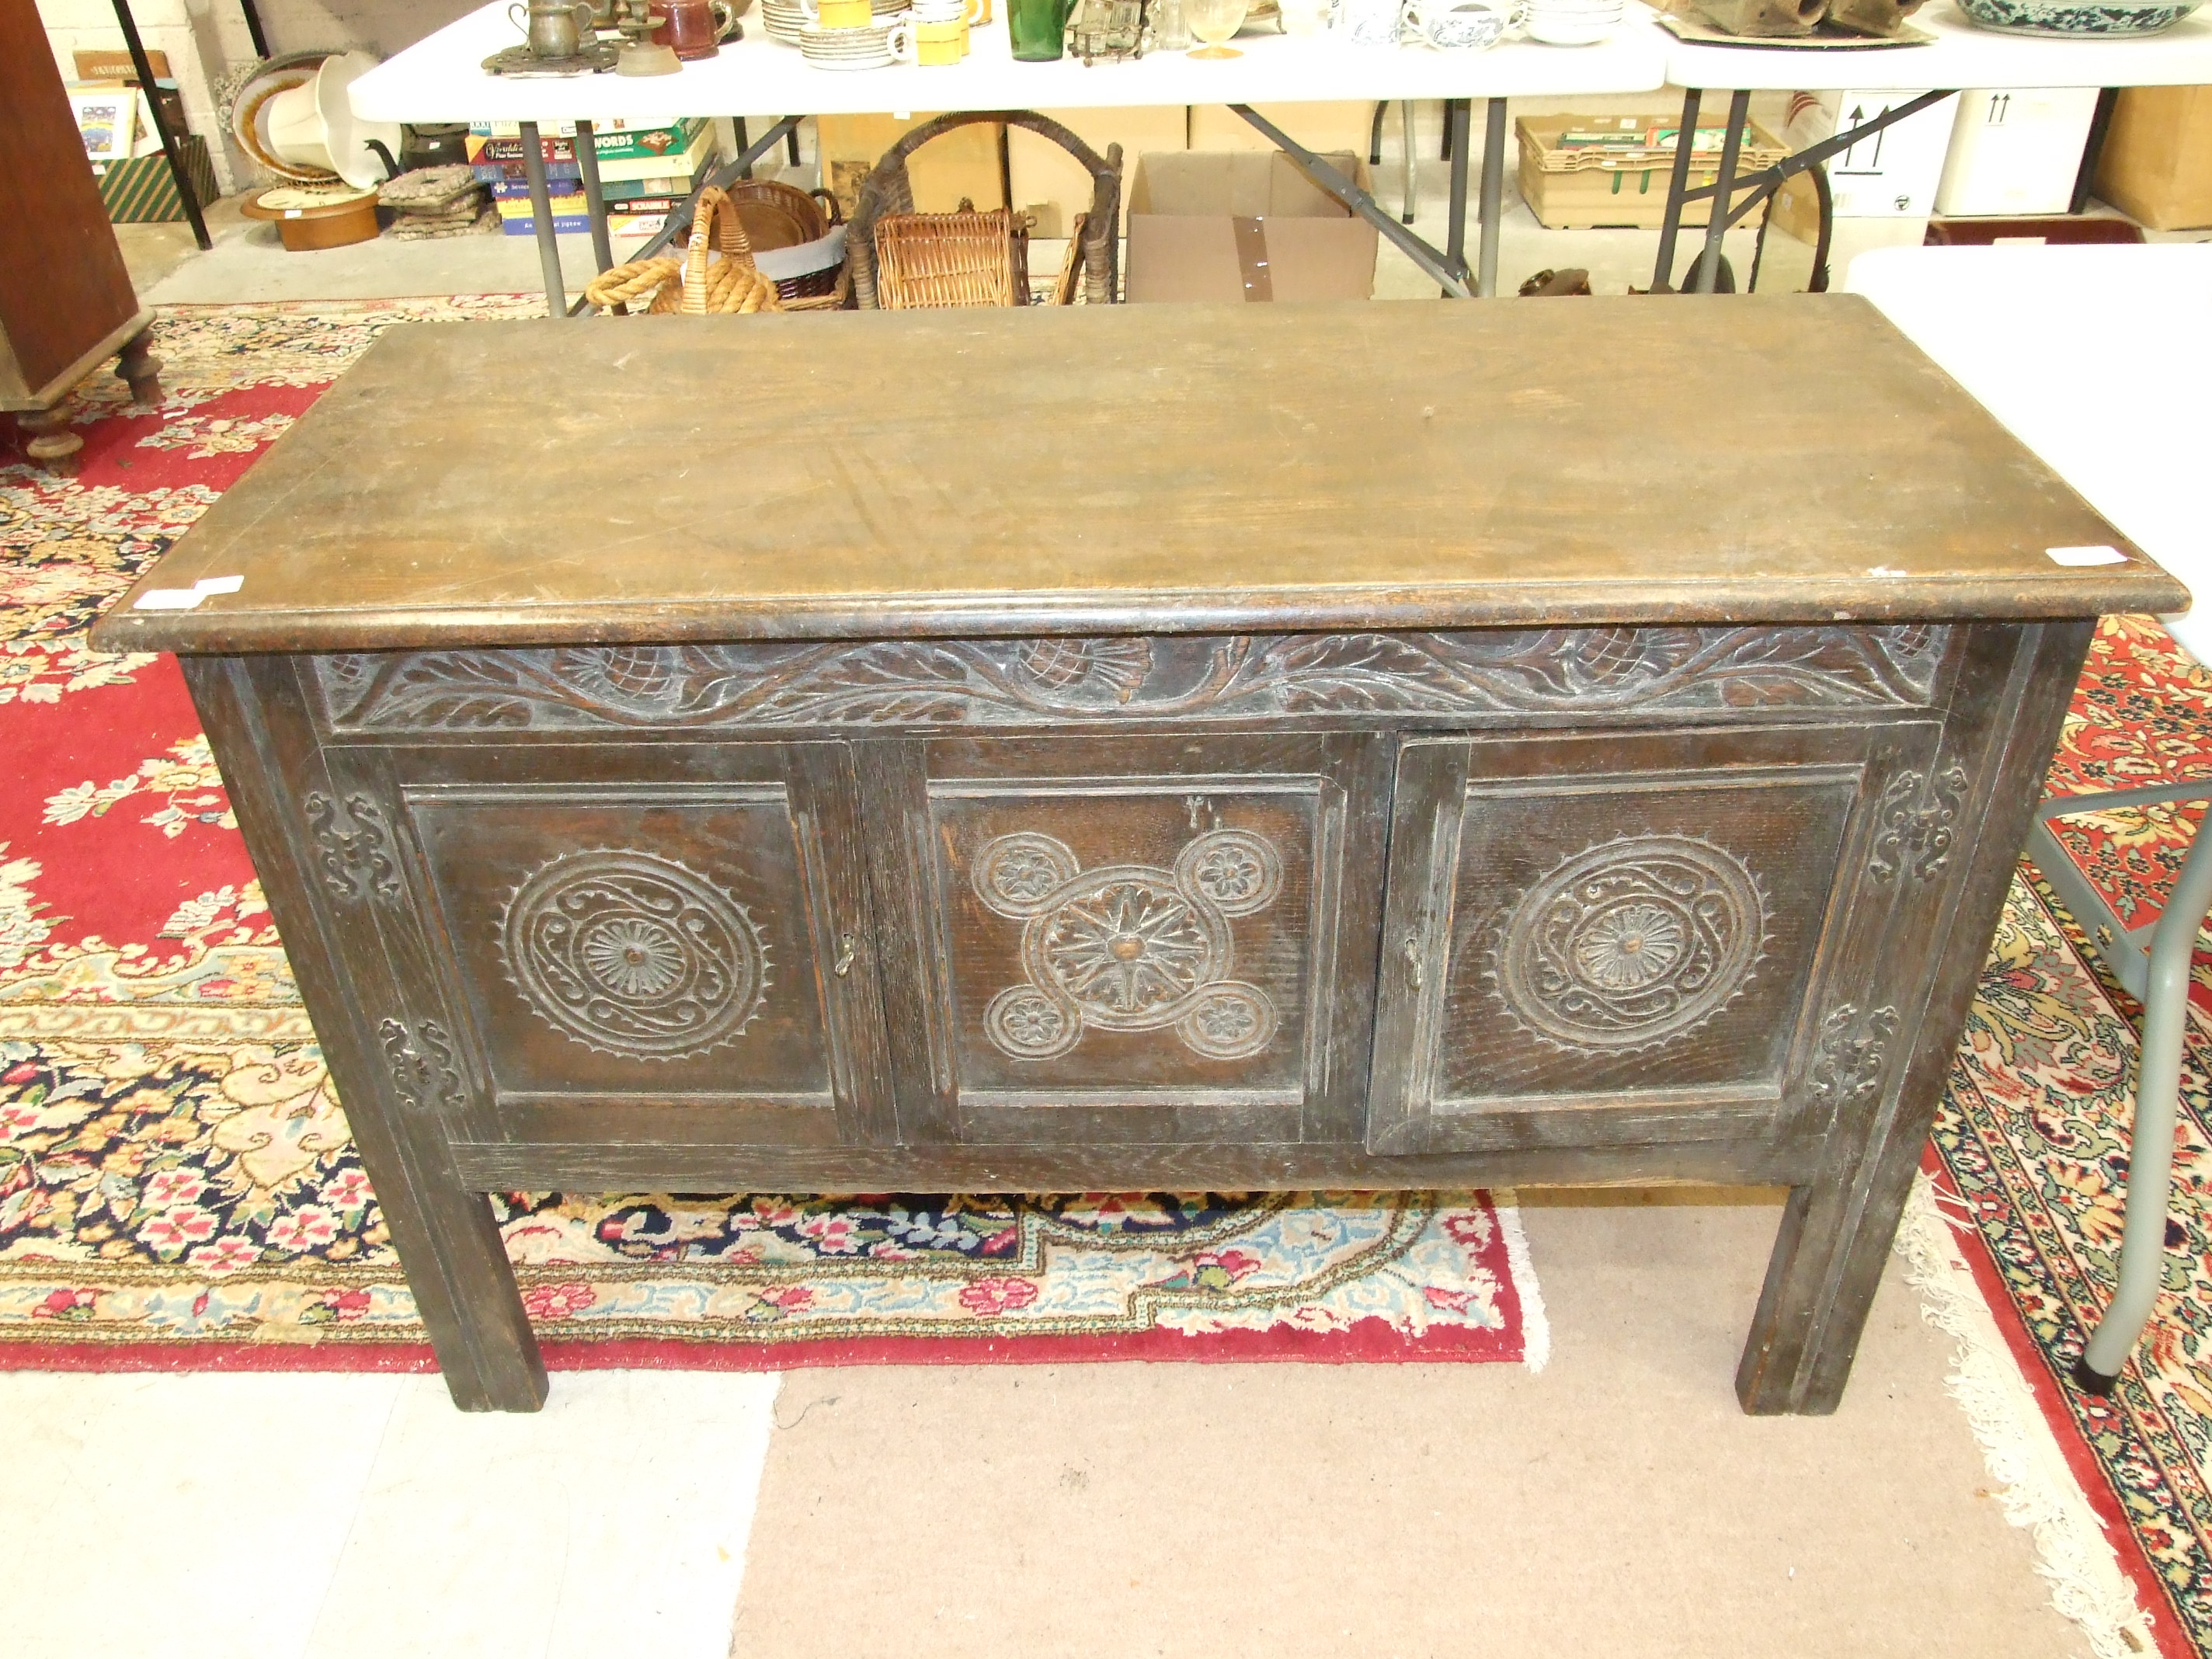 Lot 31 - An oak low sideboard, the rectangular top above a pair of carved panel doors, 120cm wide.